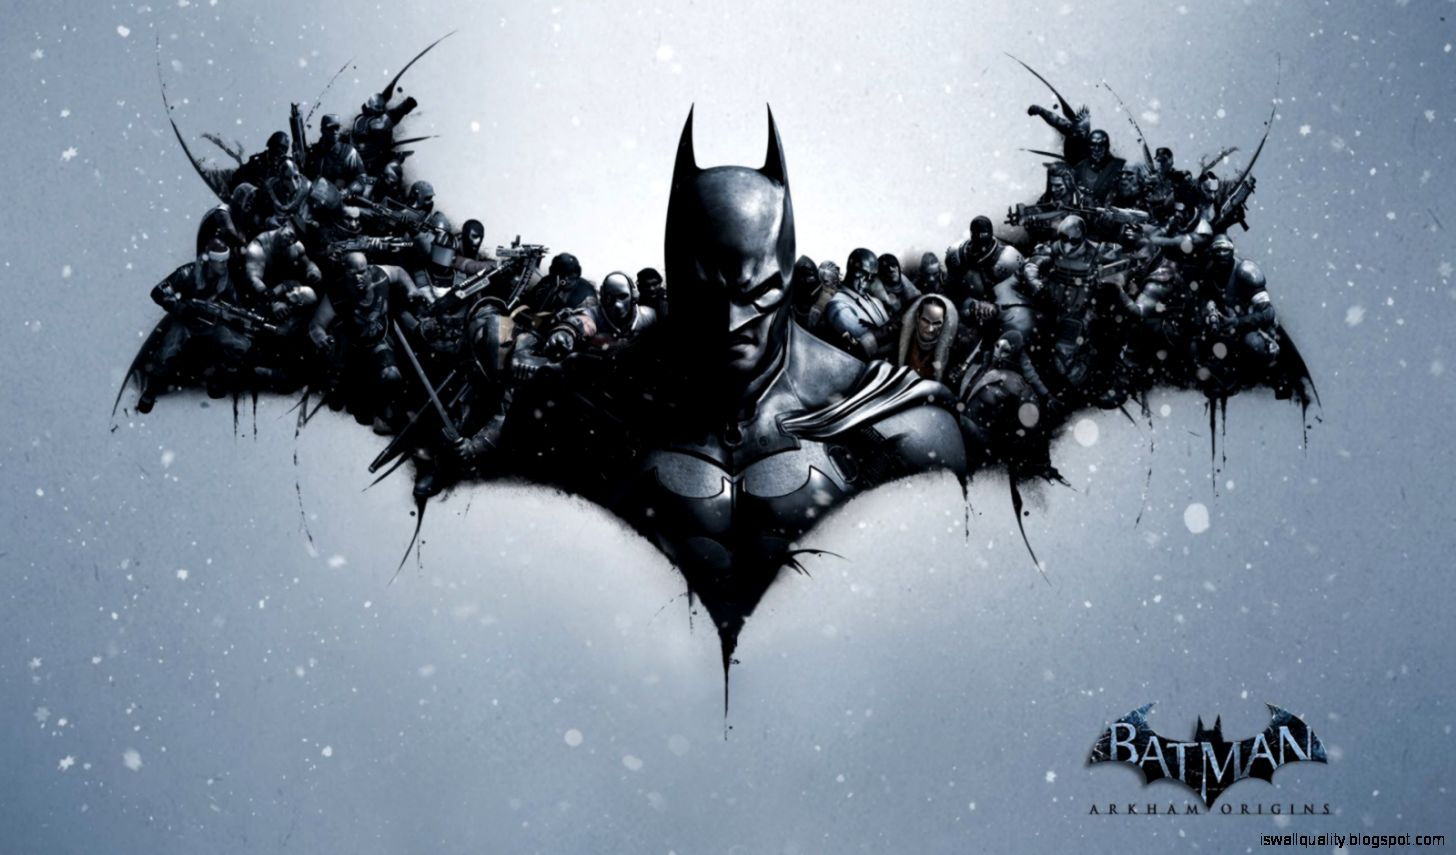 batman arkham origins game wallpapers - 74 Batman Arkham Origins HD Wallpapers Backgrounds